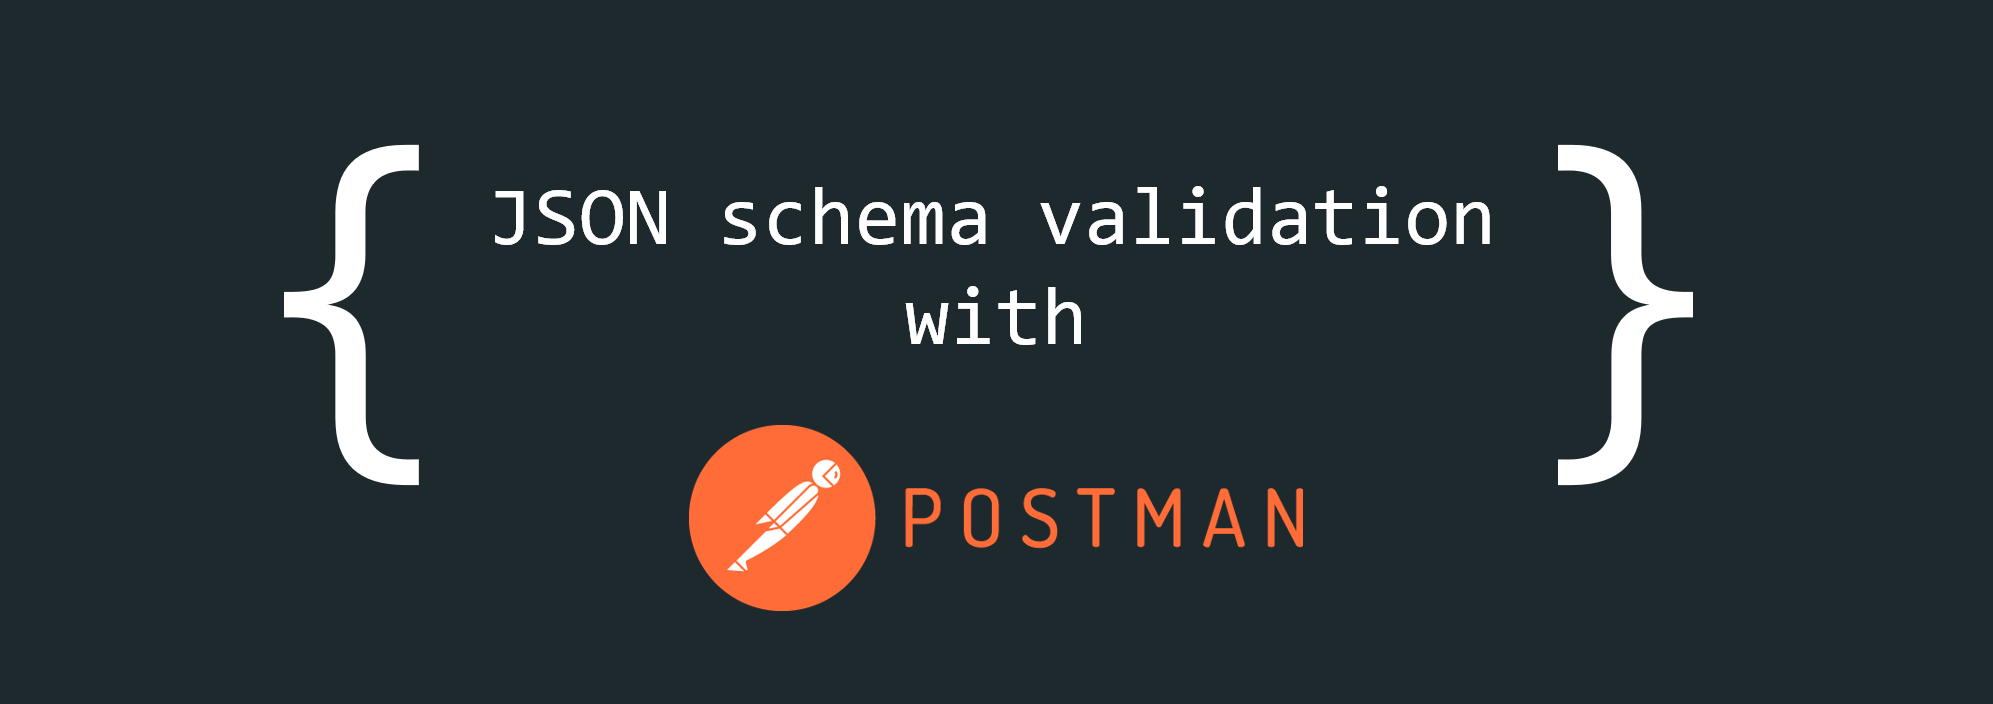 JSON schema validation in Postman using external JSON files